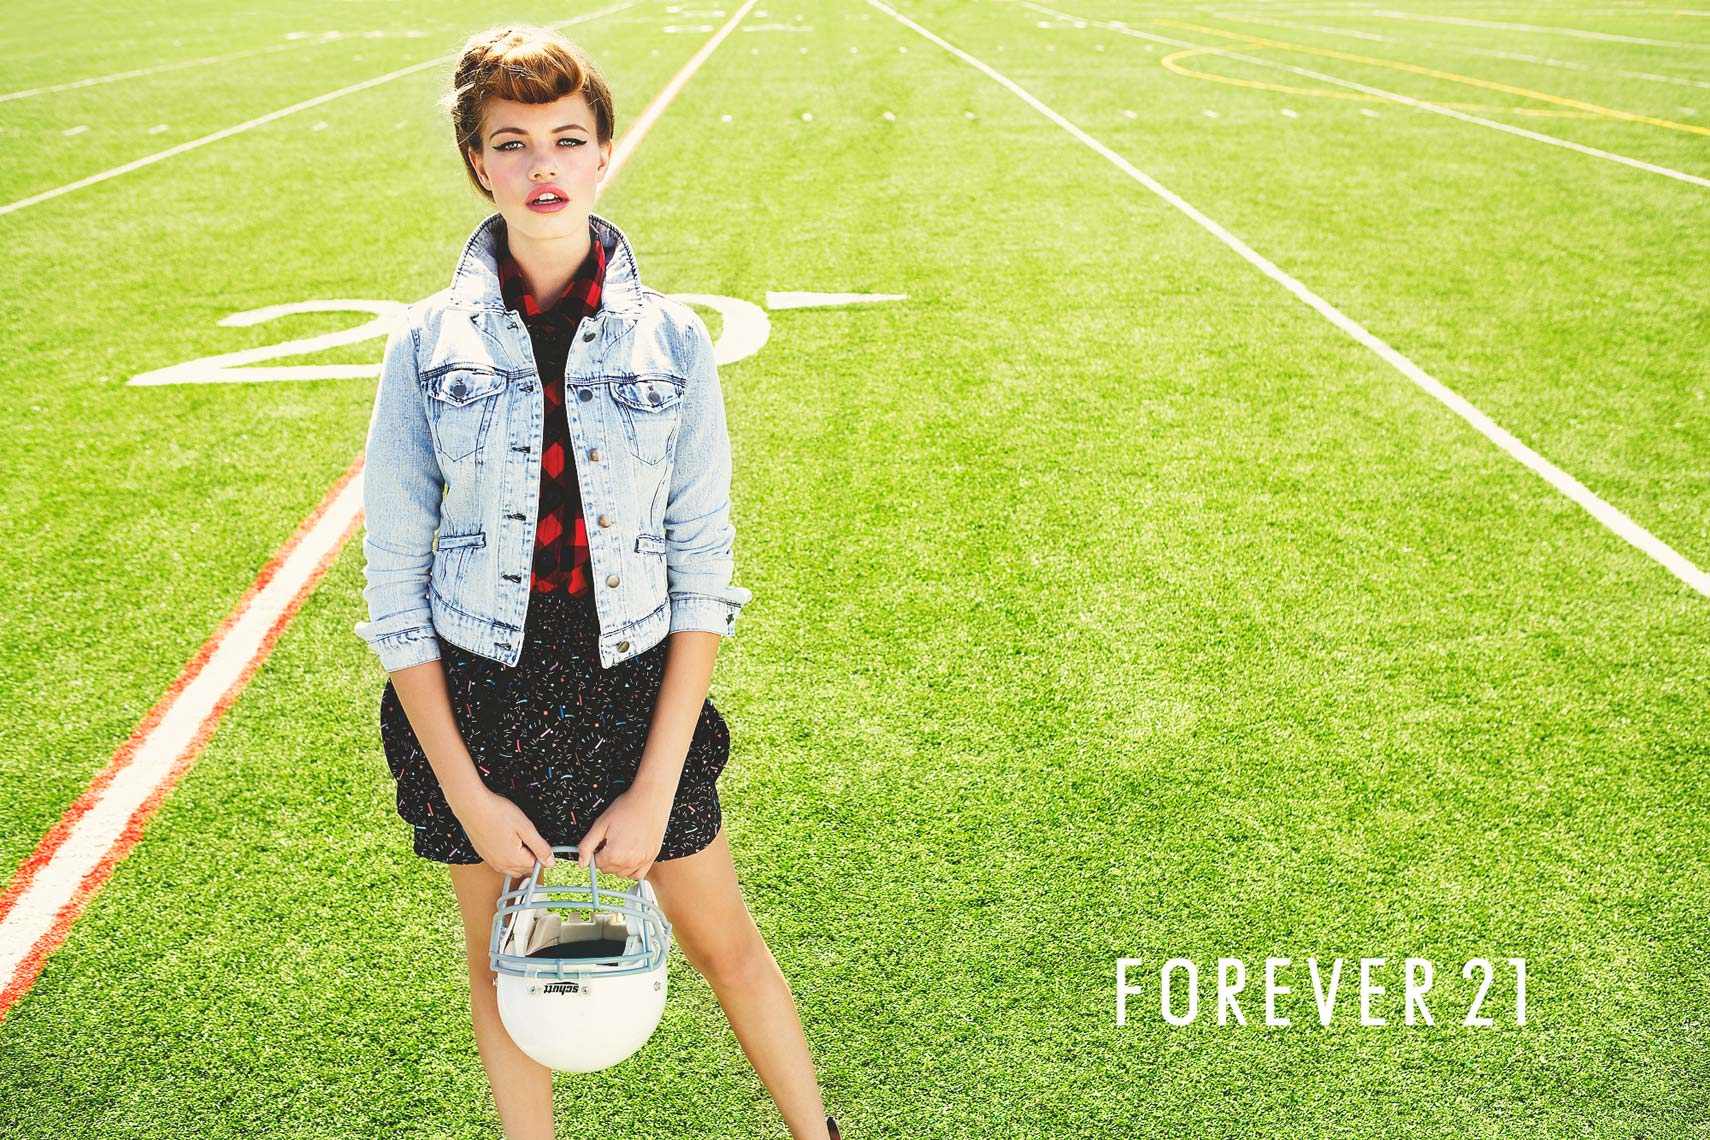 CHRIS-HUNT-FASHION-PHOTOGRAPHY-ADVERTISING-FOREVER-21-CAMPAIGN-BACK-TO-SCHOOL-0001-1